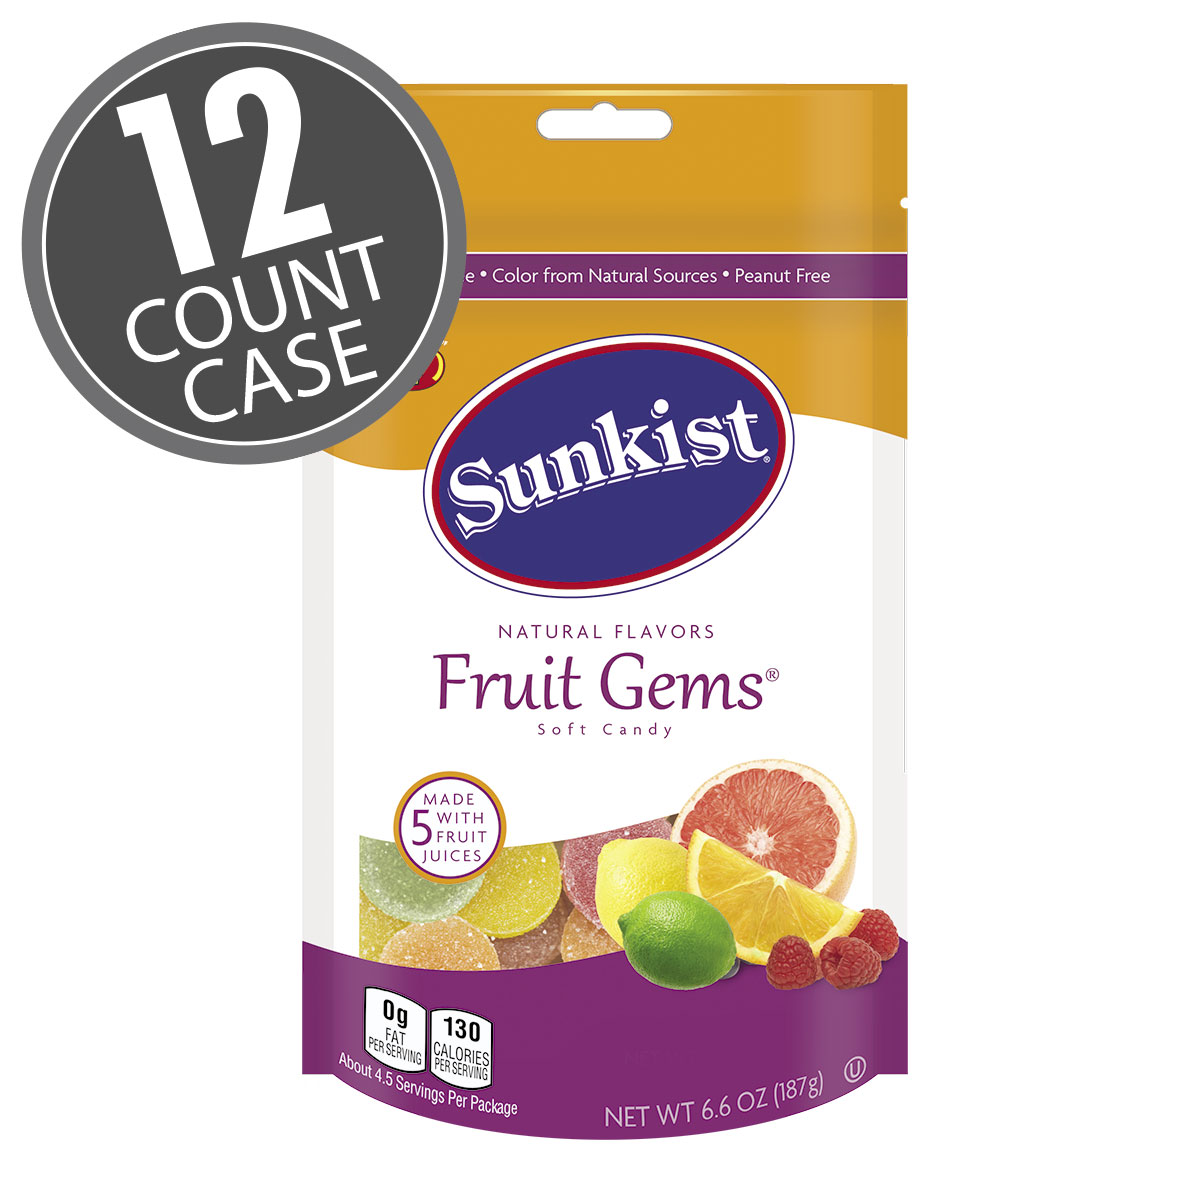 Sunkist<sup>®</sup> Fruit Gems<sup>®</sup> - 6.6 oz Pouch Bag - 12 Count Case